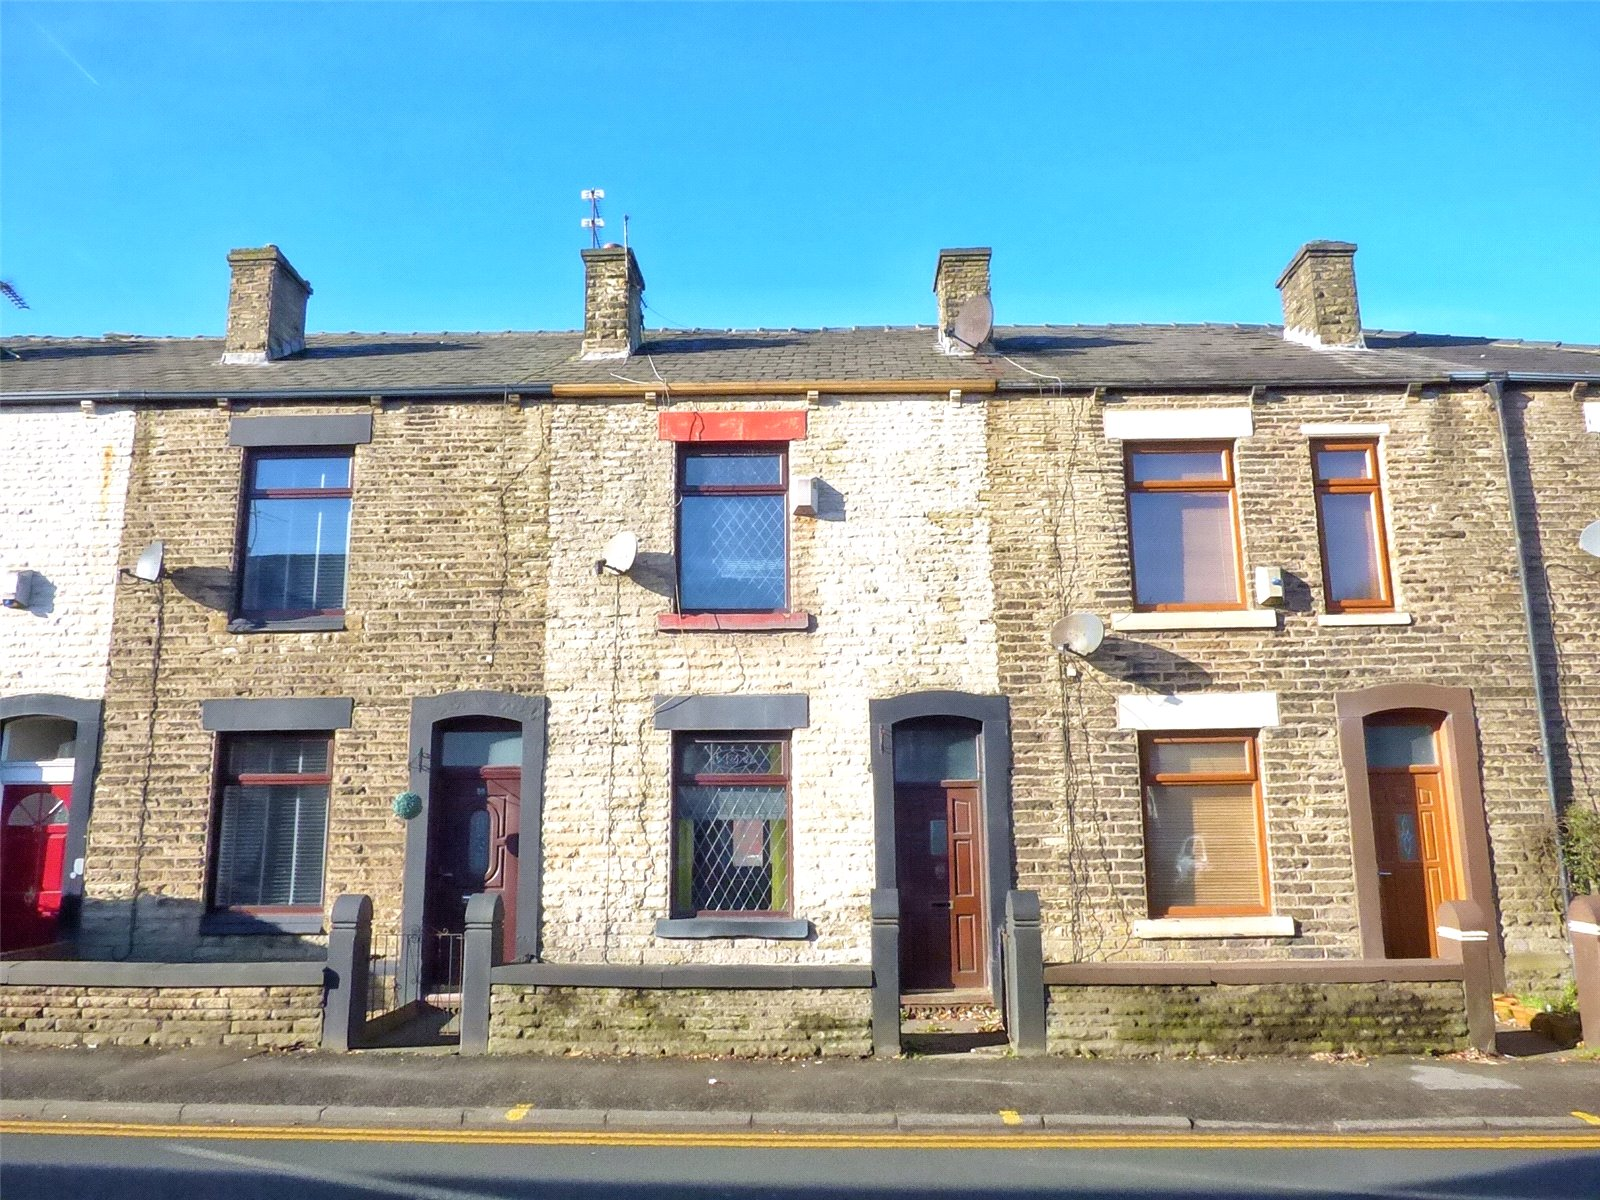 Residential Commercial Property To Let For Community Groups